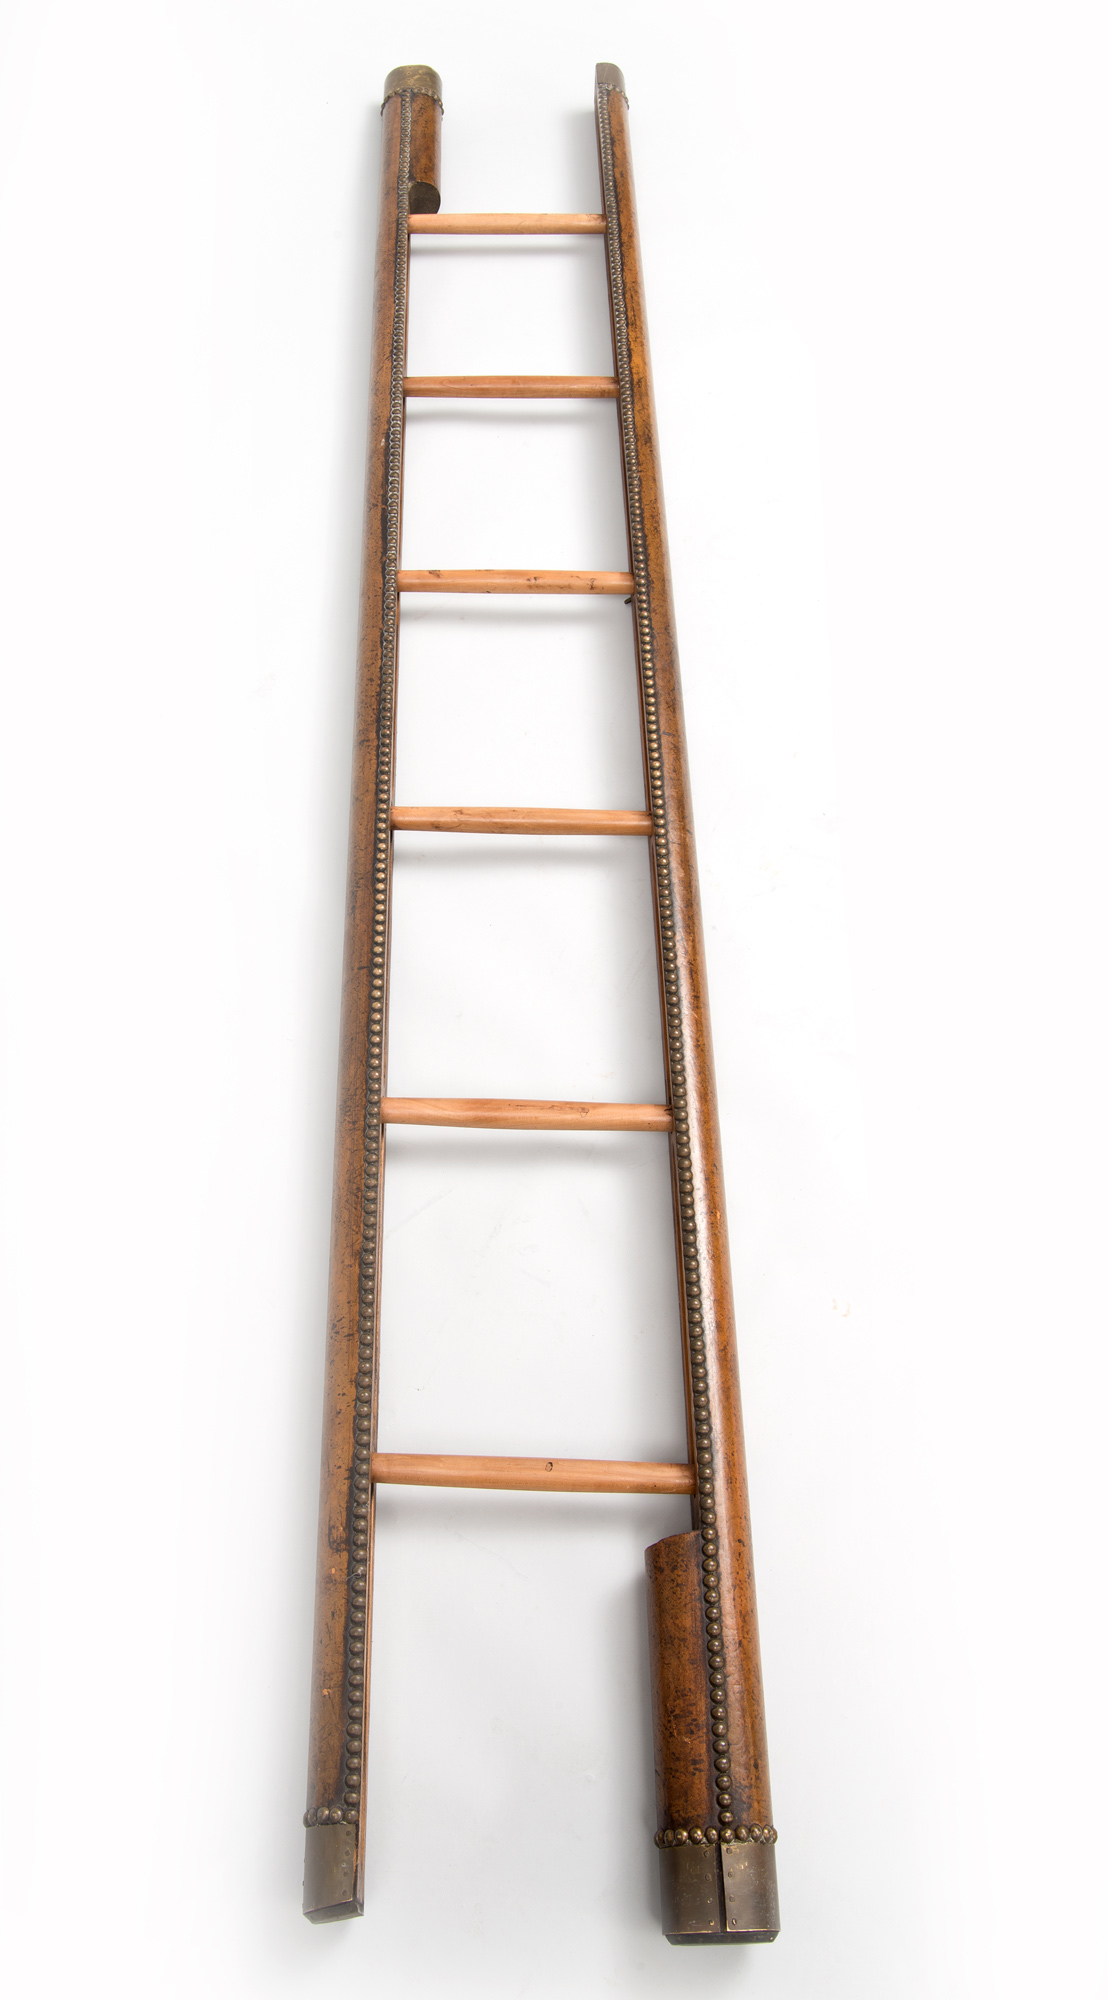 187 Product 187 Antique Pole Ladder